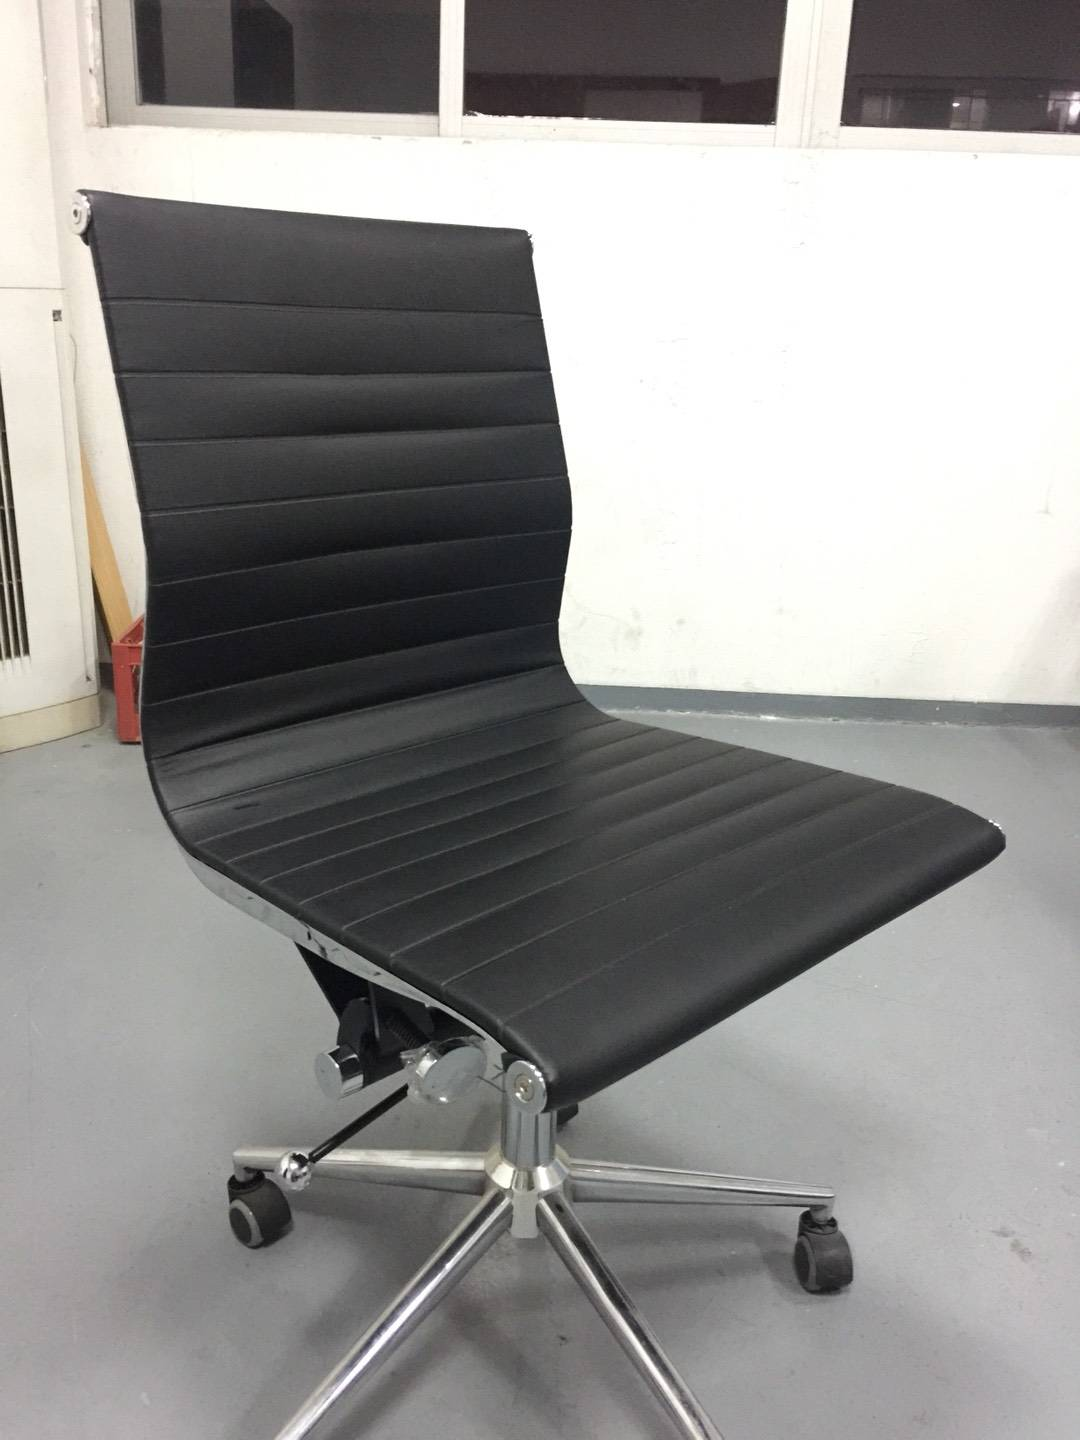 Product Description   1.EA117 office chair with functional locking-tilt mechanism . 2.FUll aluminum alloy frame 3.Usual color is available ,can be made of leather, mesh, fabric, vinyl 4.The leather we use is only the top grain Italy leather 5.Our office chairs are sold well to German banks, hilton hotels etc. 6.All the chair parts of the fabric chair are inpected one by one by QC 7.CAL117 or BS 5852 fireproof foam and PU are available 8.Strong package to protect the office chairs from damage, see the detailed picture below 9.Two special handicraft: sewing lines on seat cushion and heat sealing lines, we have our own heating machine 10.High back chair, middle back chair and conferece chair 11.Do OEM, you can choose aluminium die-casting PU wheels or metal cap with nylon wheels, mechanism with aluminum die casting or plastic handle, five star or four star base, sewing lines or heat seeling lines etc. Seat and back thin pad	Stitching lines  Material	Italy leather Frame finishing	full aluminium chrome, polish, balck, white